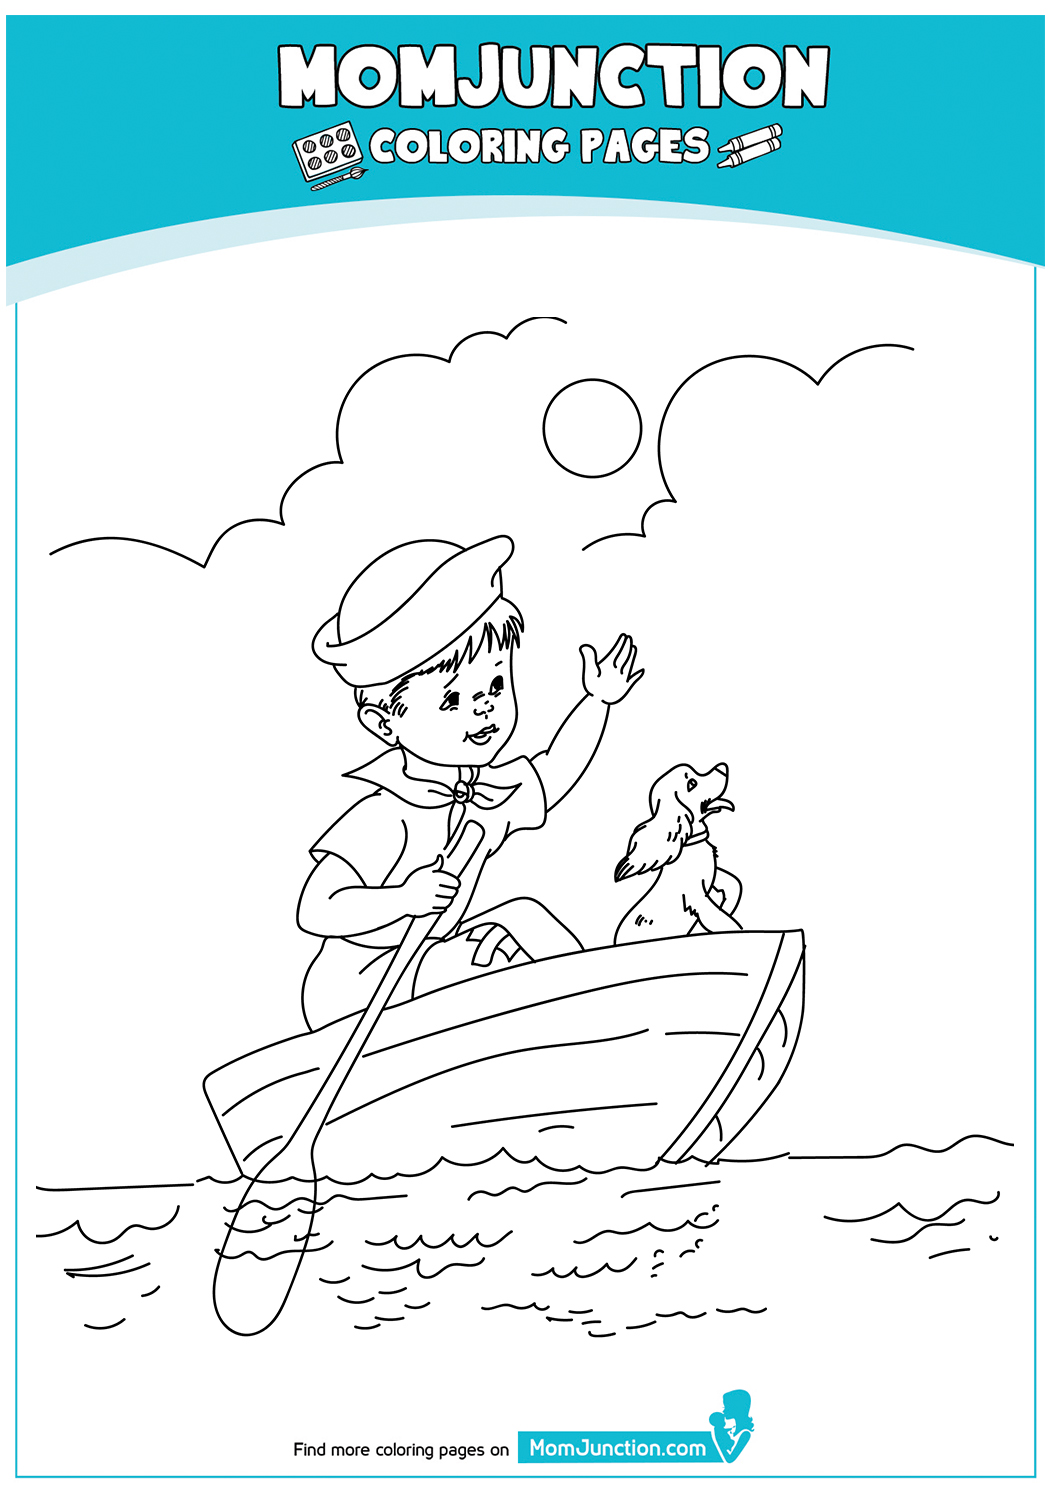 A-Baby-Sailor-On-Boat-17